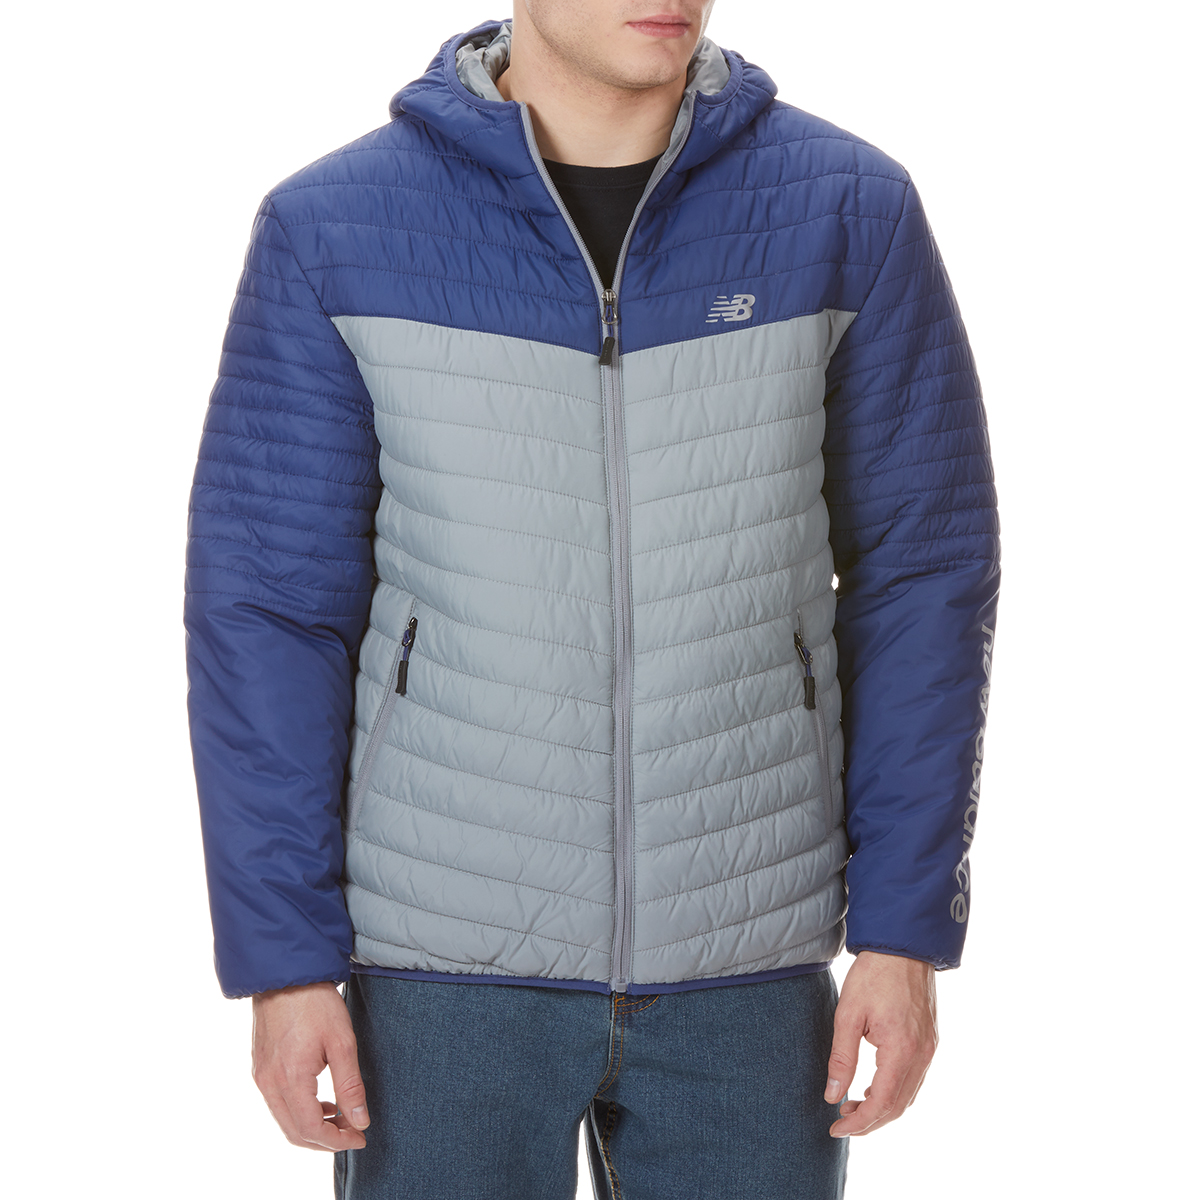 New Balence Men's Colorblocked Hooded Cire Puffer Jacket - Blue, L